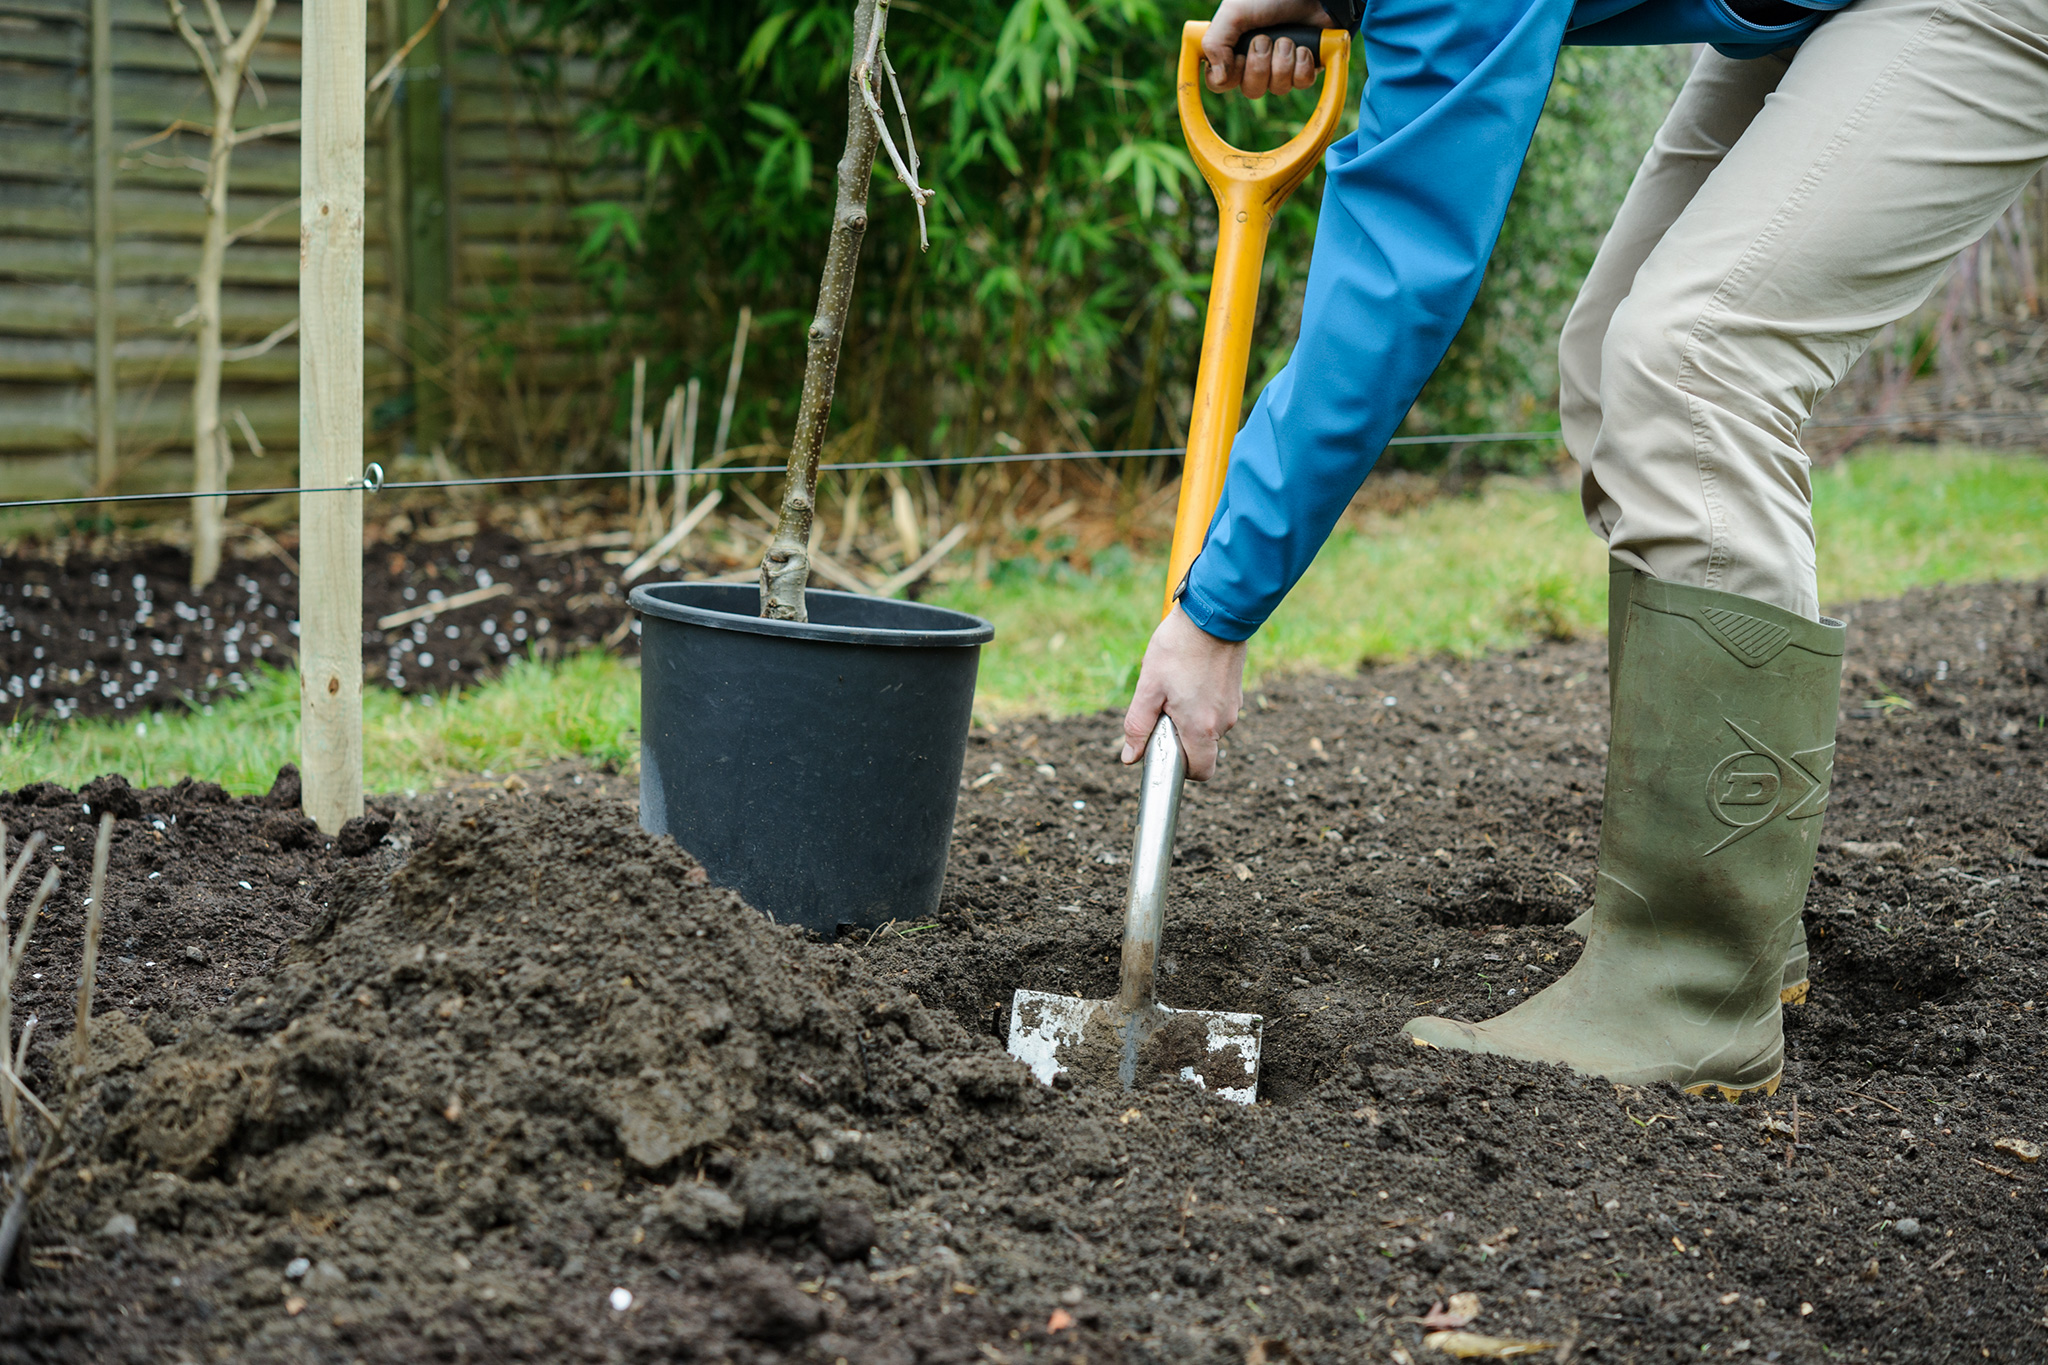 digging-a-hole-to-plant-an-apple-tree-2